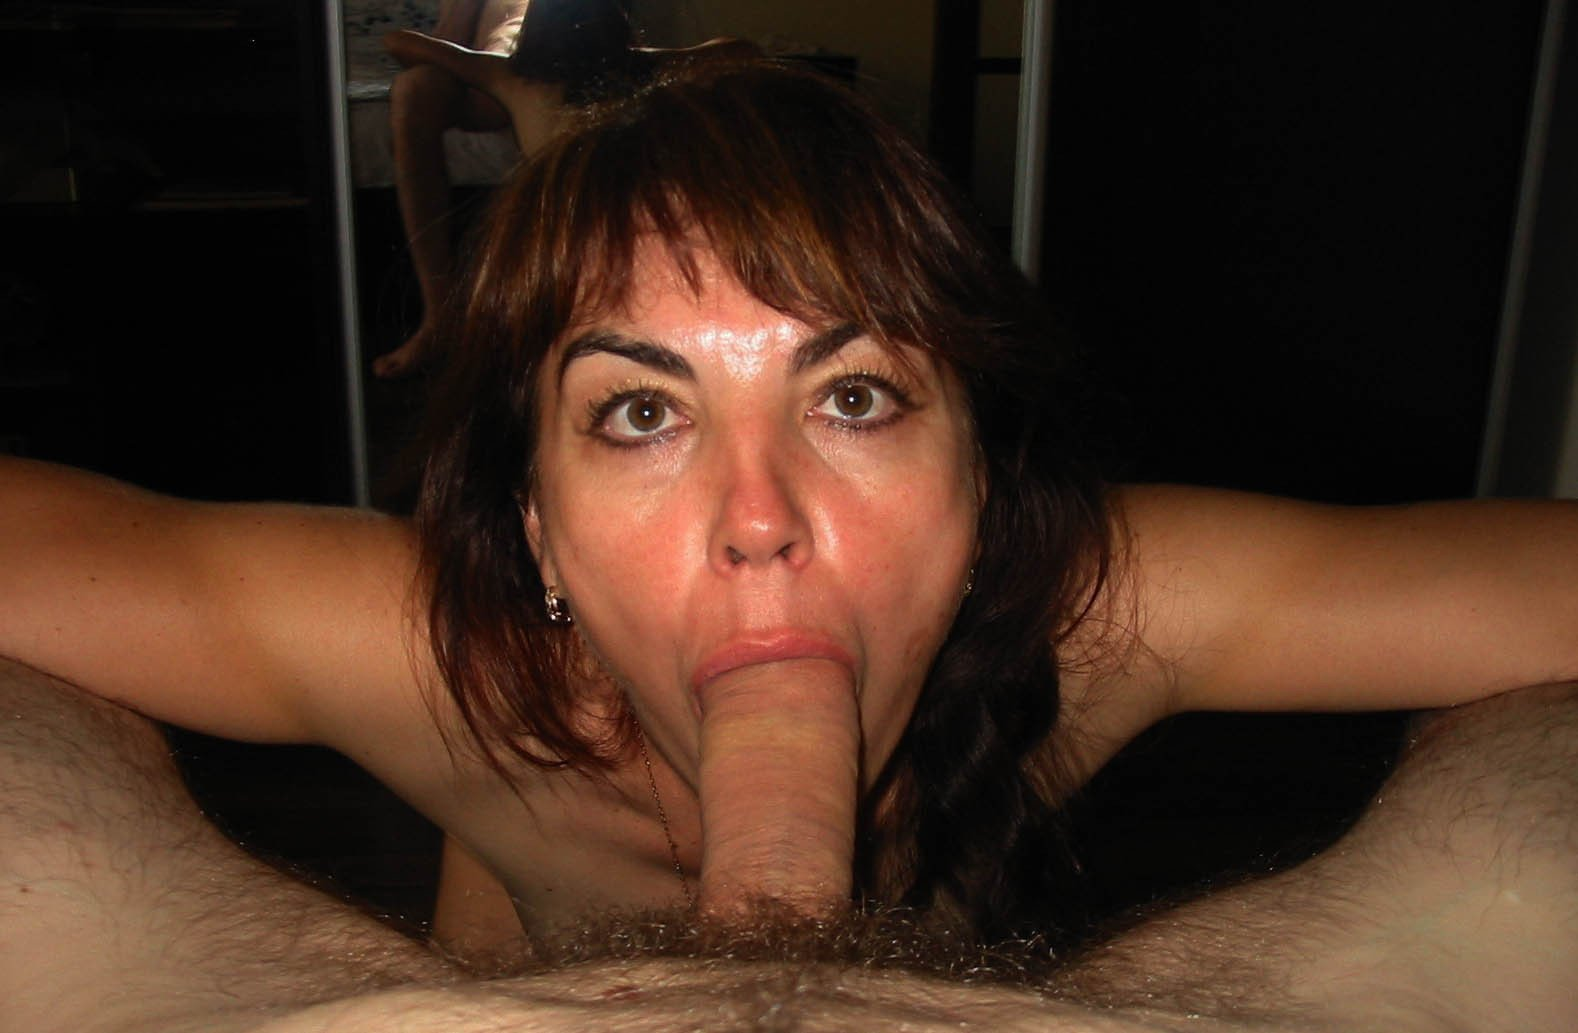 Spanish adult amateur web site